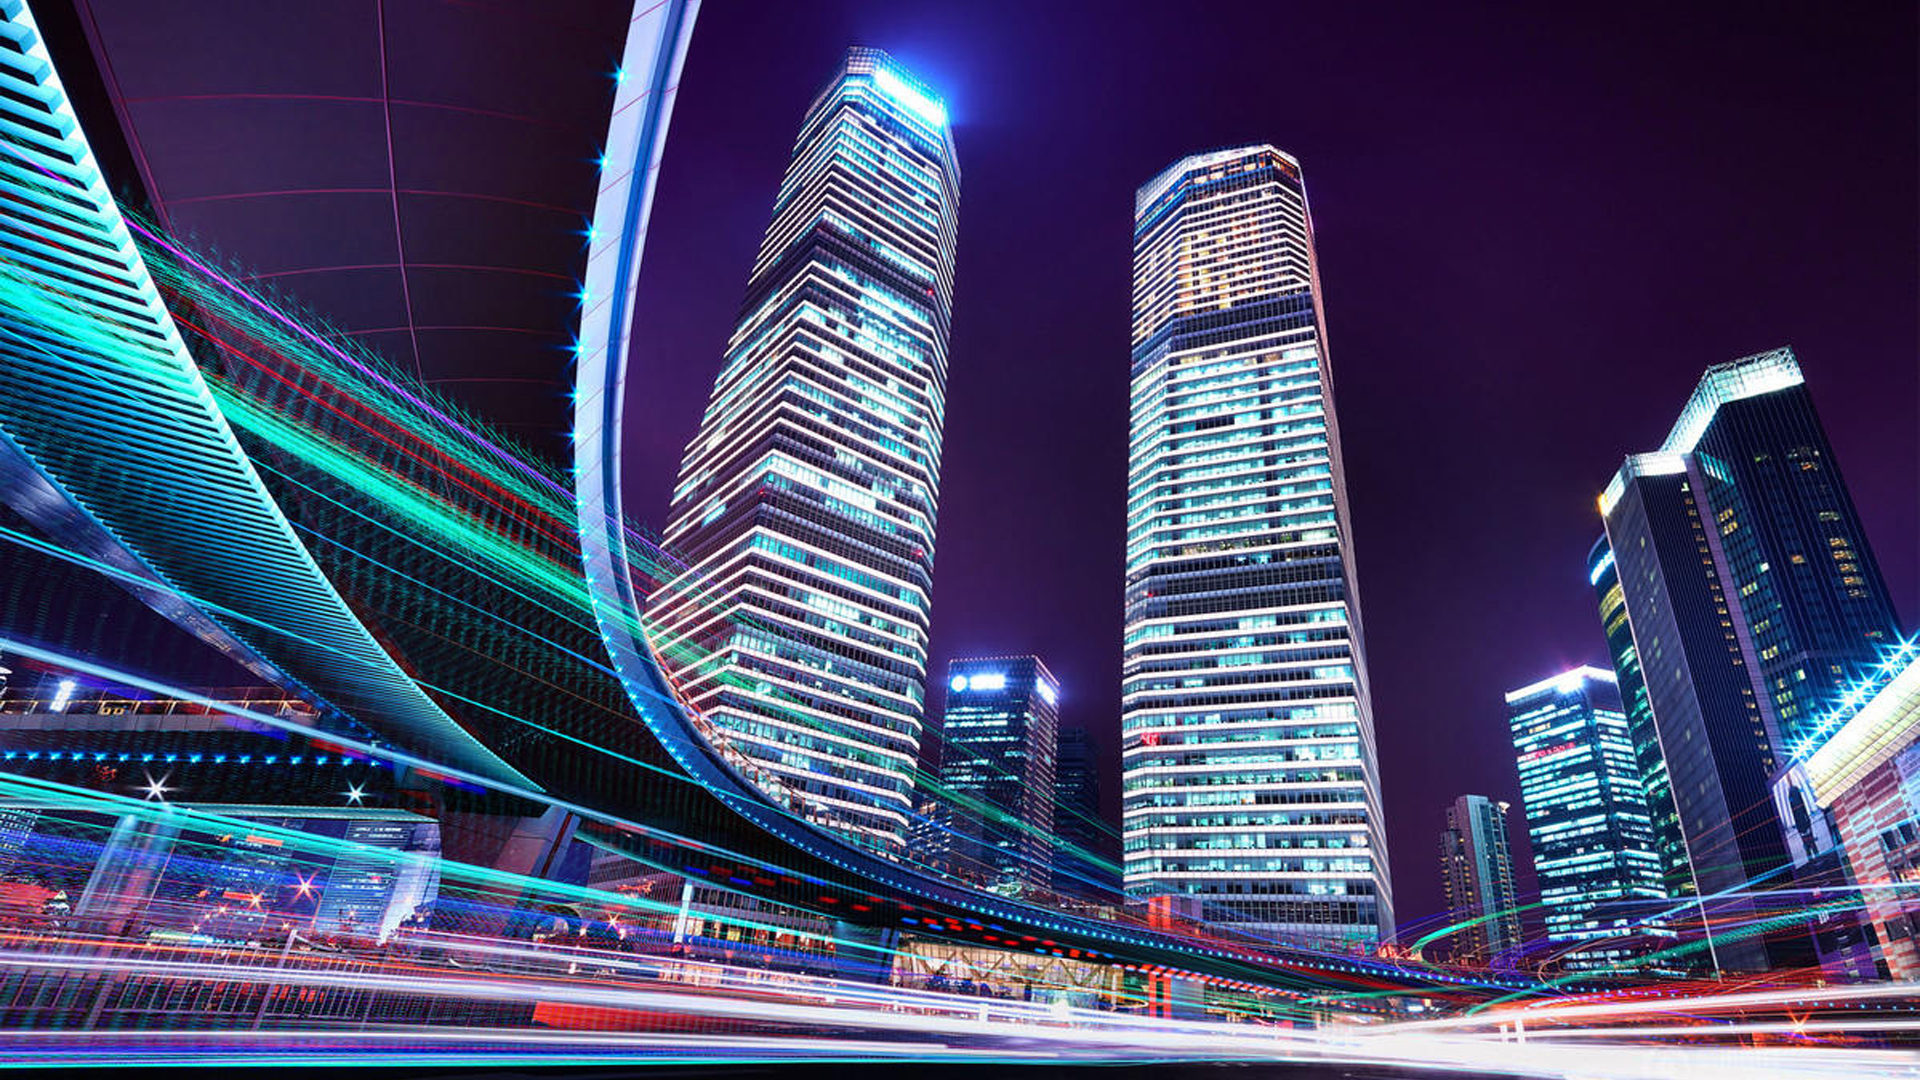 First Iphone Wallpaper For Iphone X Shanghai China Skyscrapers Night Time Hd Wallpaper 1920